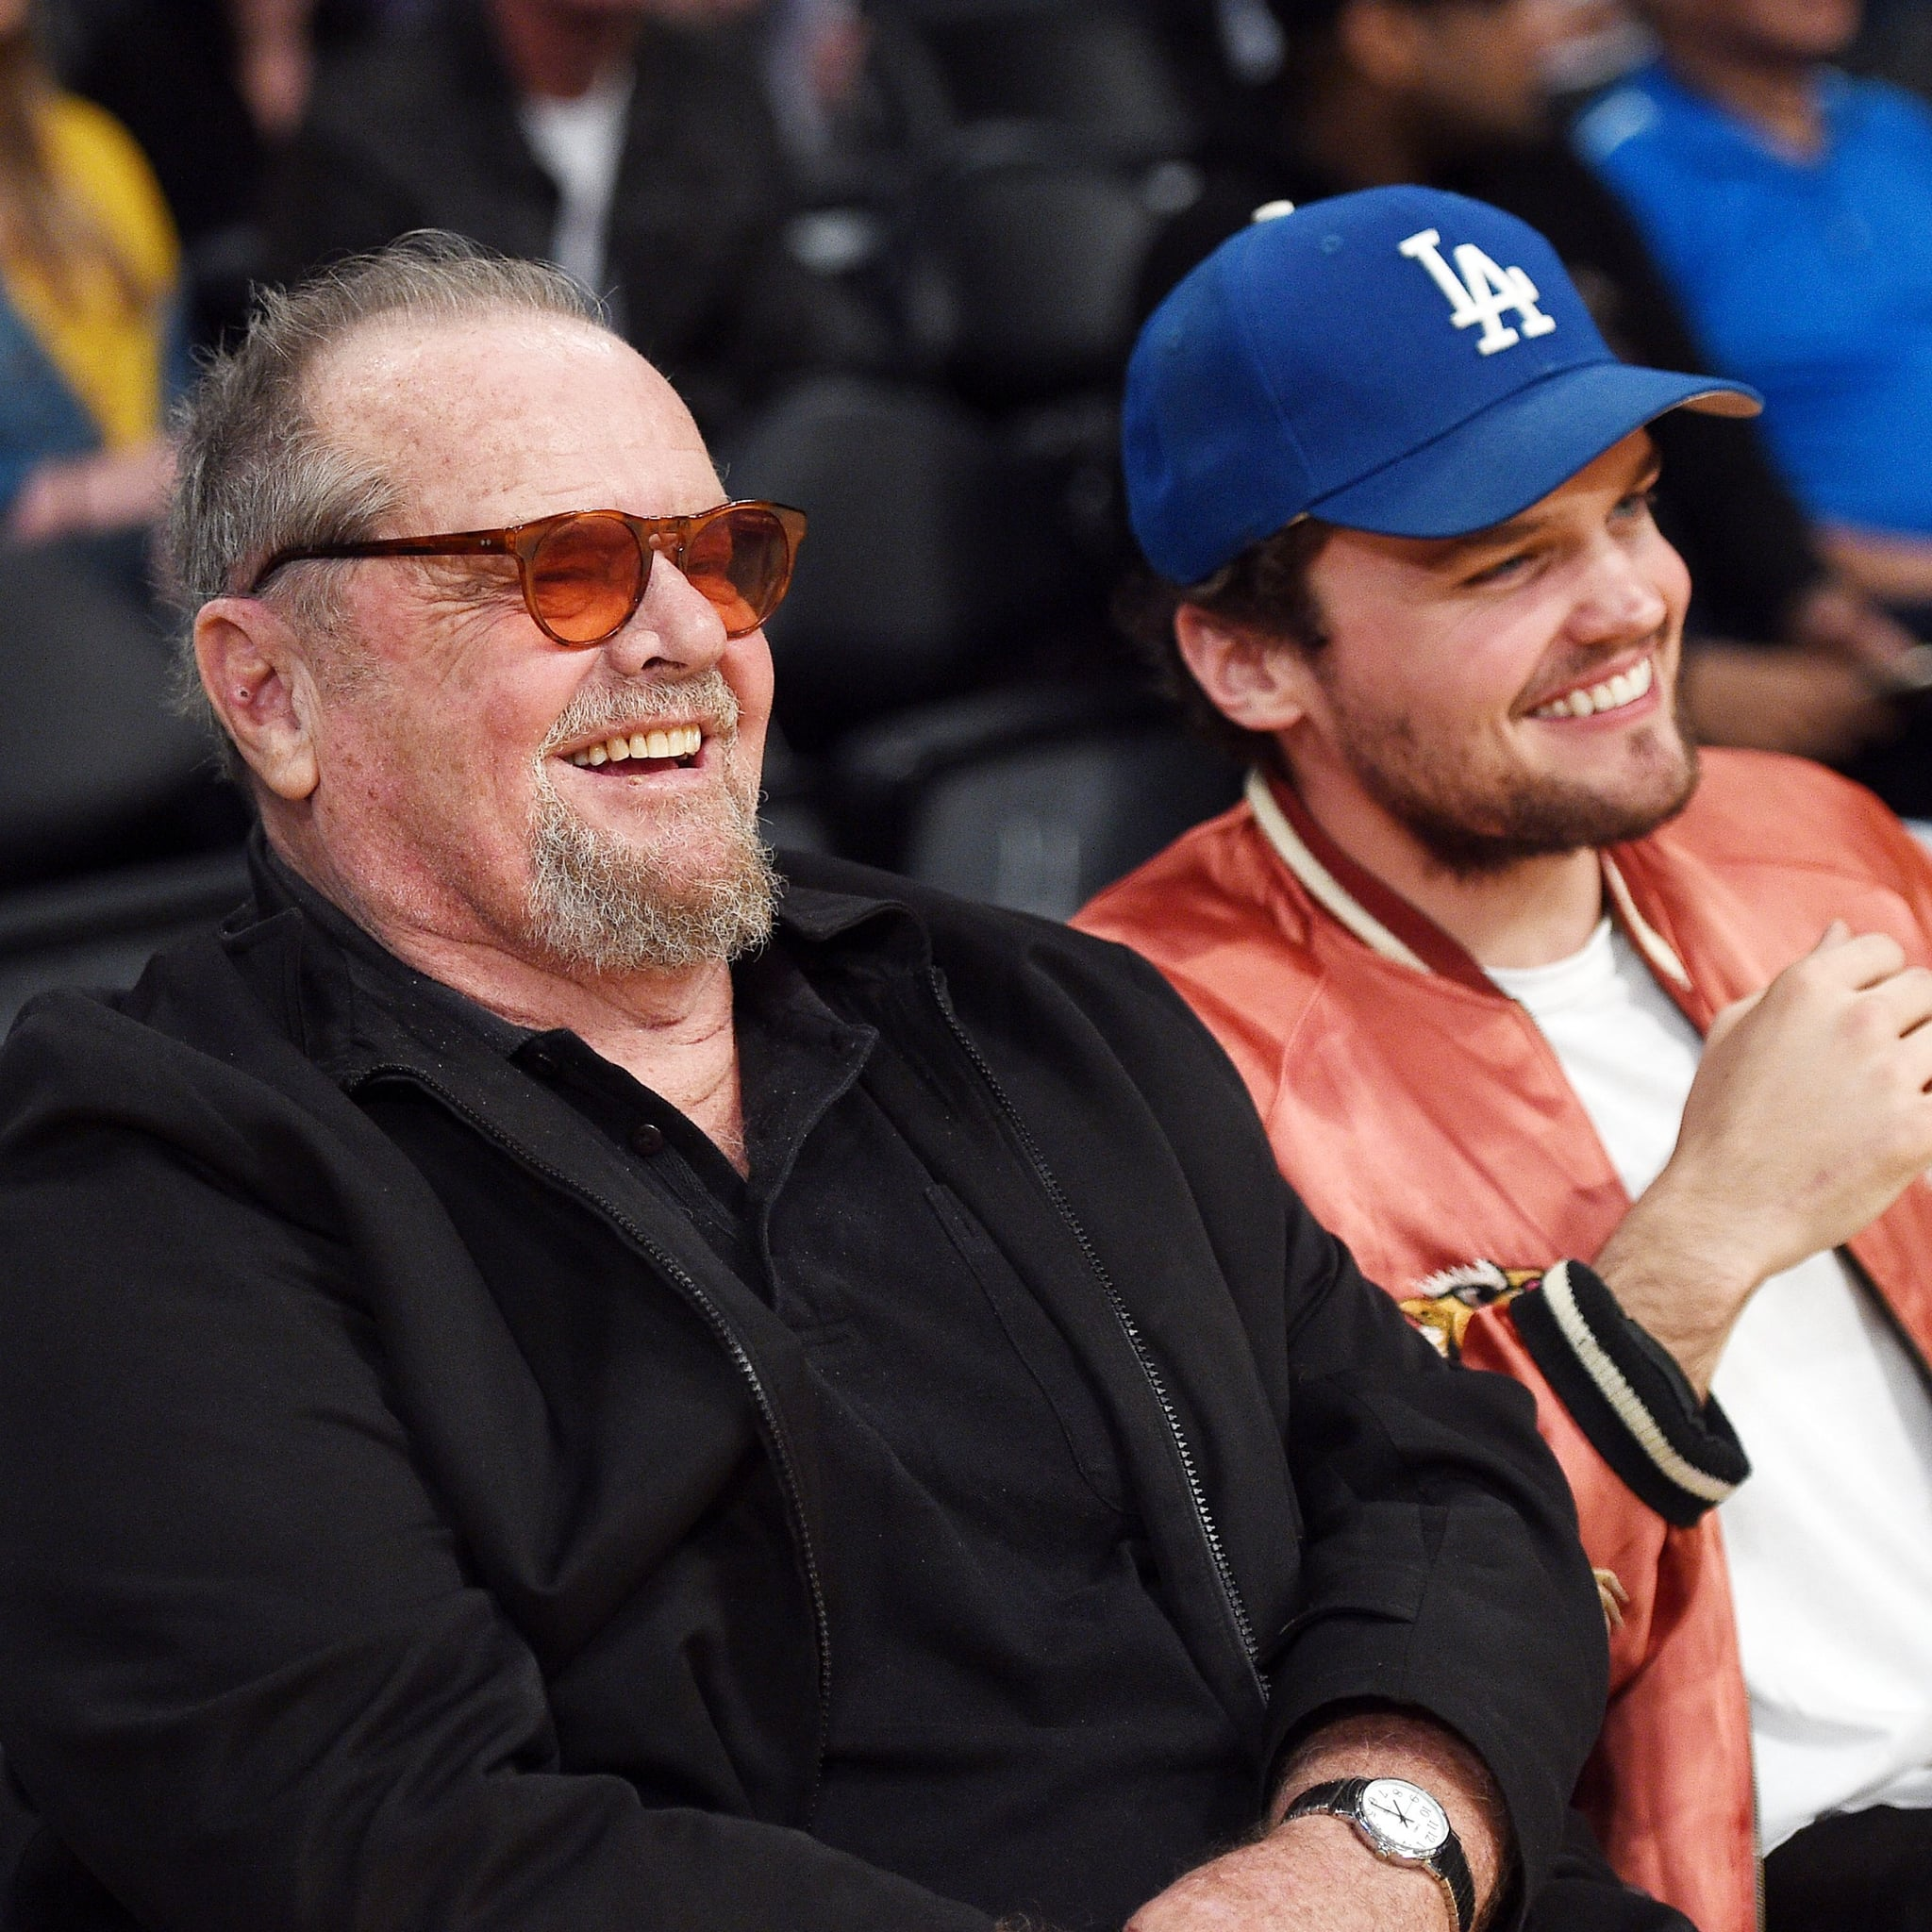 Jack Nicholson And Son Ray At Lakers Game March 2017 Popsugar Middle East Celebrity And Entertainment Jack nicholson's daughter makes a splash in new movie about surfing). jack nicholson and son ray at lakers